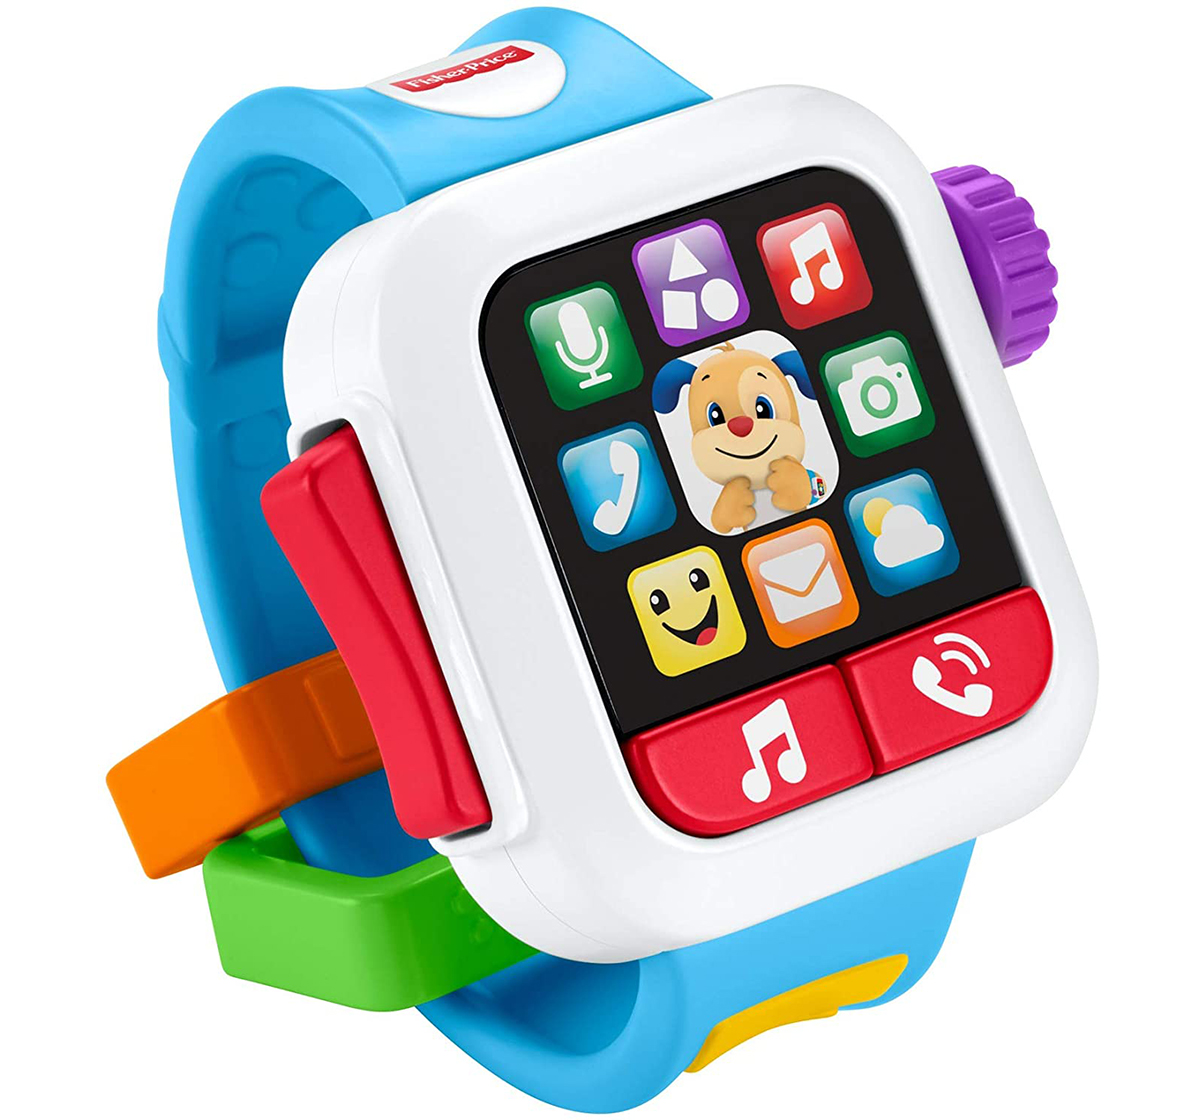 Fisher-Price   Fisher-Price Laugh & Learn Time to Learn Smartwatch Learning Toys for Kids age 6M+